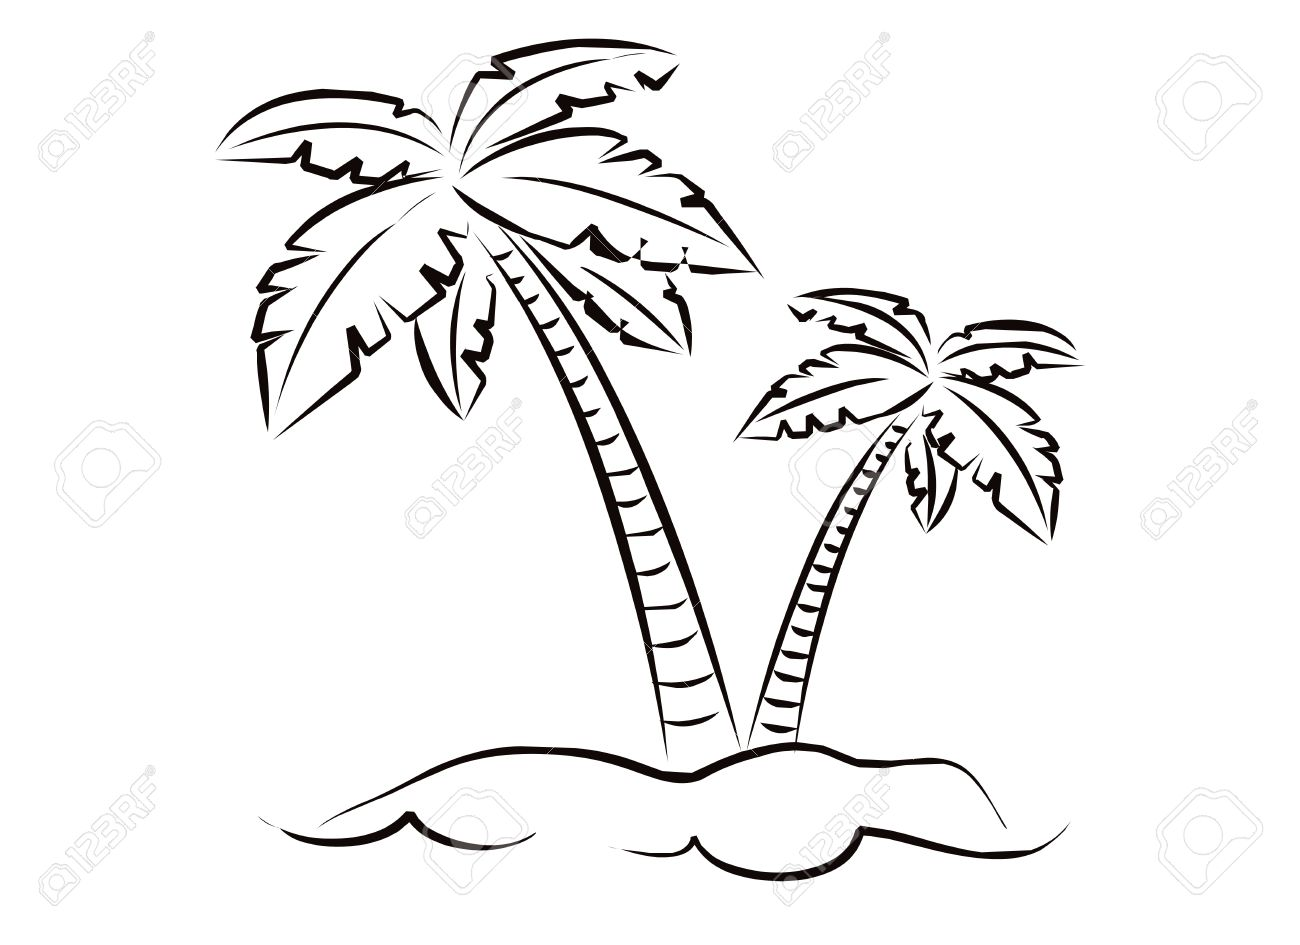 1300x945 Coconut Tree For Black And White Image On A White Background Stock